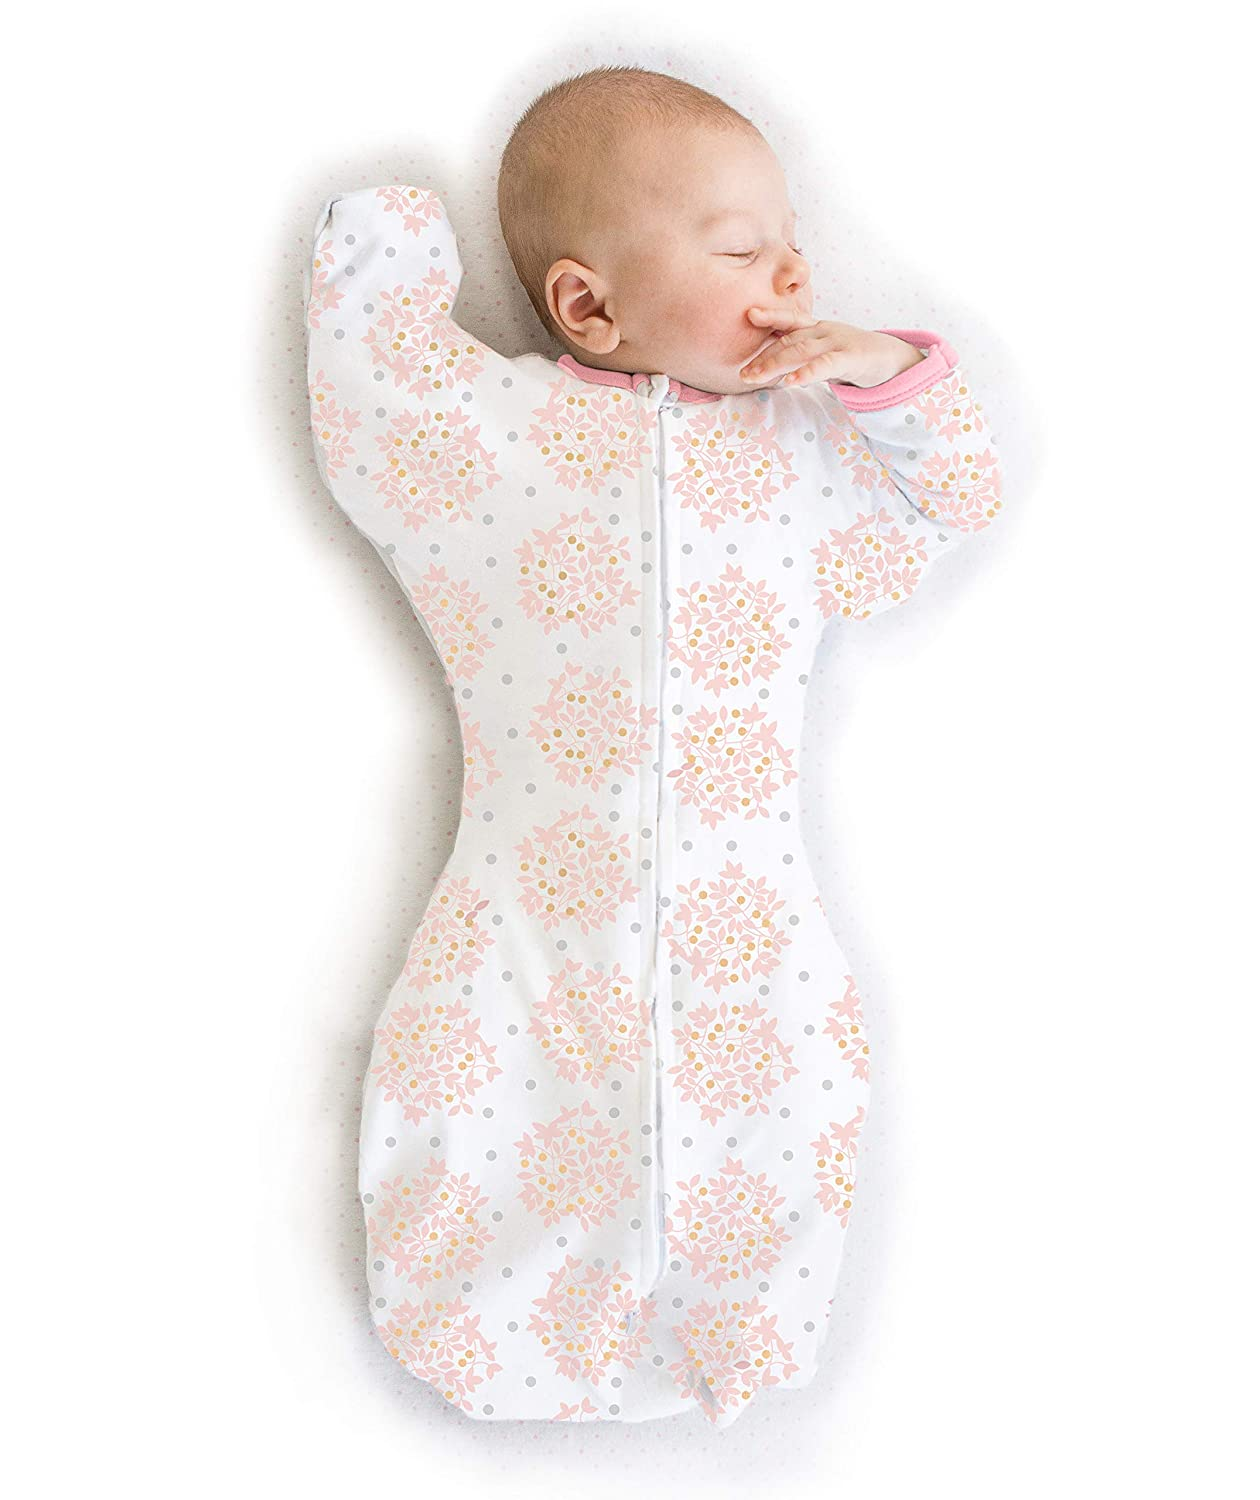 0-3mo SwaddleDesigns Transitional Swaddle Sack with Arms Up Half-Length Sleeves and Mitten Cuffs Parents Picks Award Winner Bella Pink Small 6-14 lbs